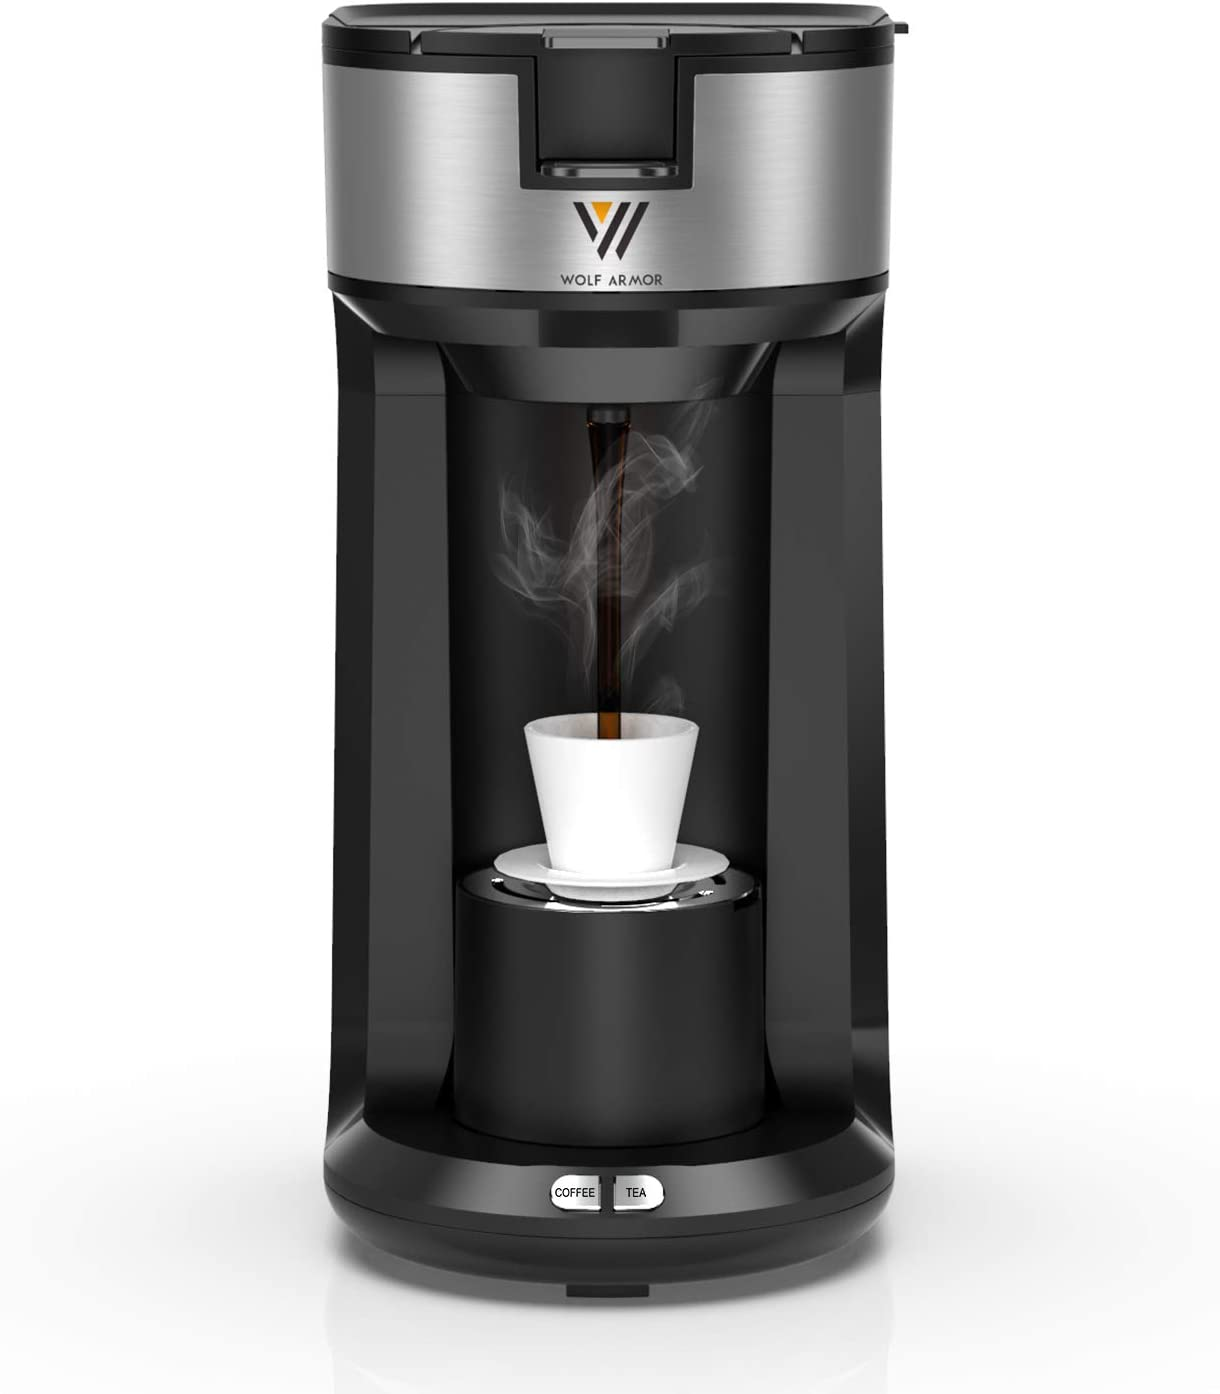 WOLF ARMOR Single Serve Coffee Maker for K Cup Pods, Coffee Grounds & Tea, 3-IN-1 Thermal Drip Instant Fast Brewing Coffee Machine with Self Cleaning Function, 6 to 14 Oz Brew Strength Control